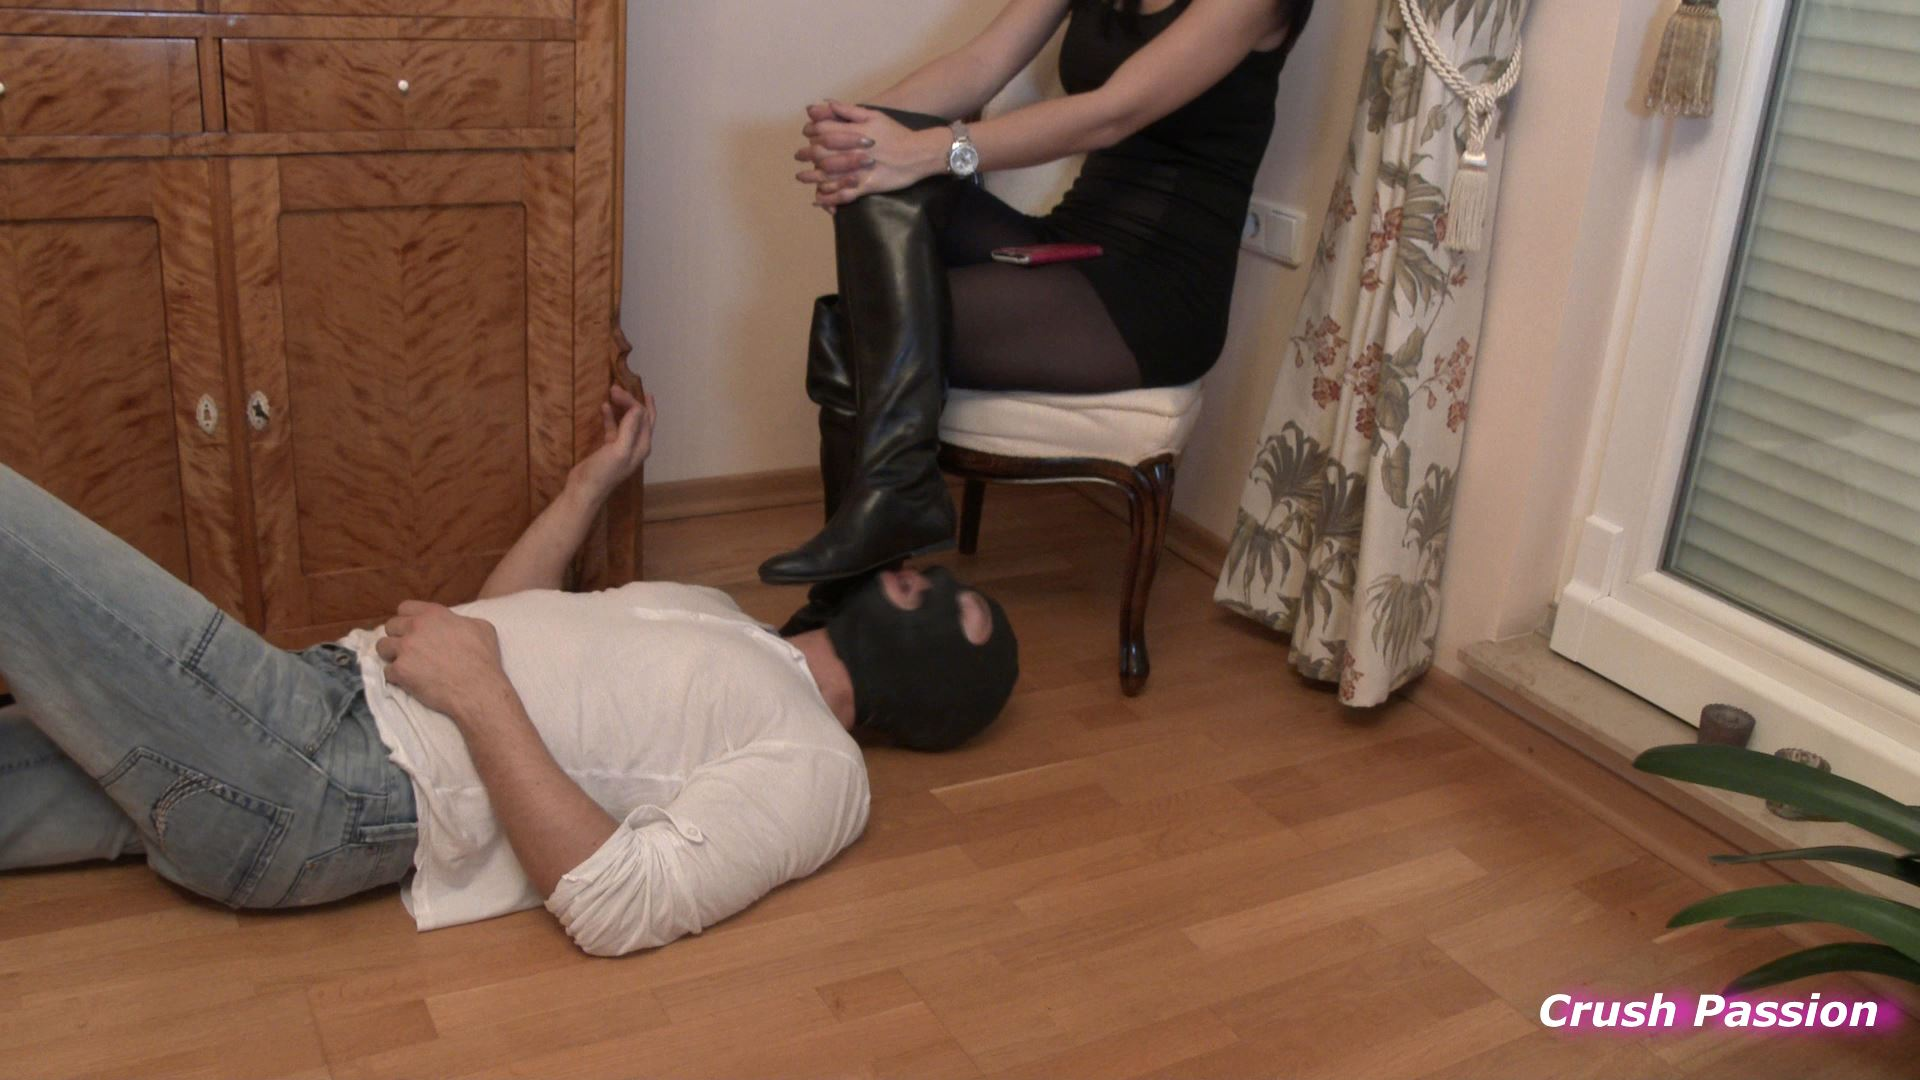 Mistress Chanel In Scene: Your Daily Job - CLIPS4SALE / CRUSH PASSION - FULL HD/1080p/MP4